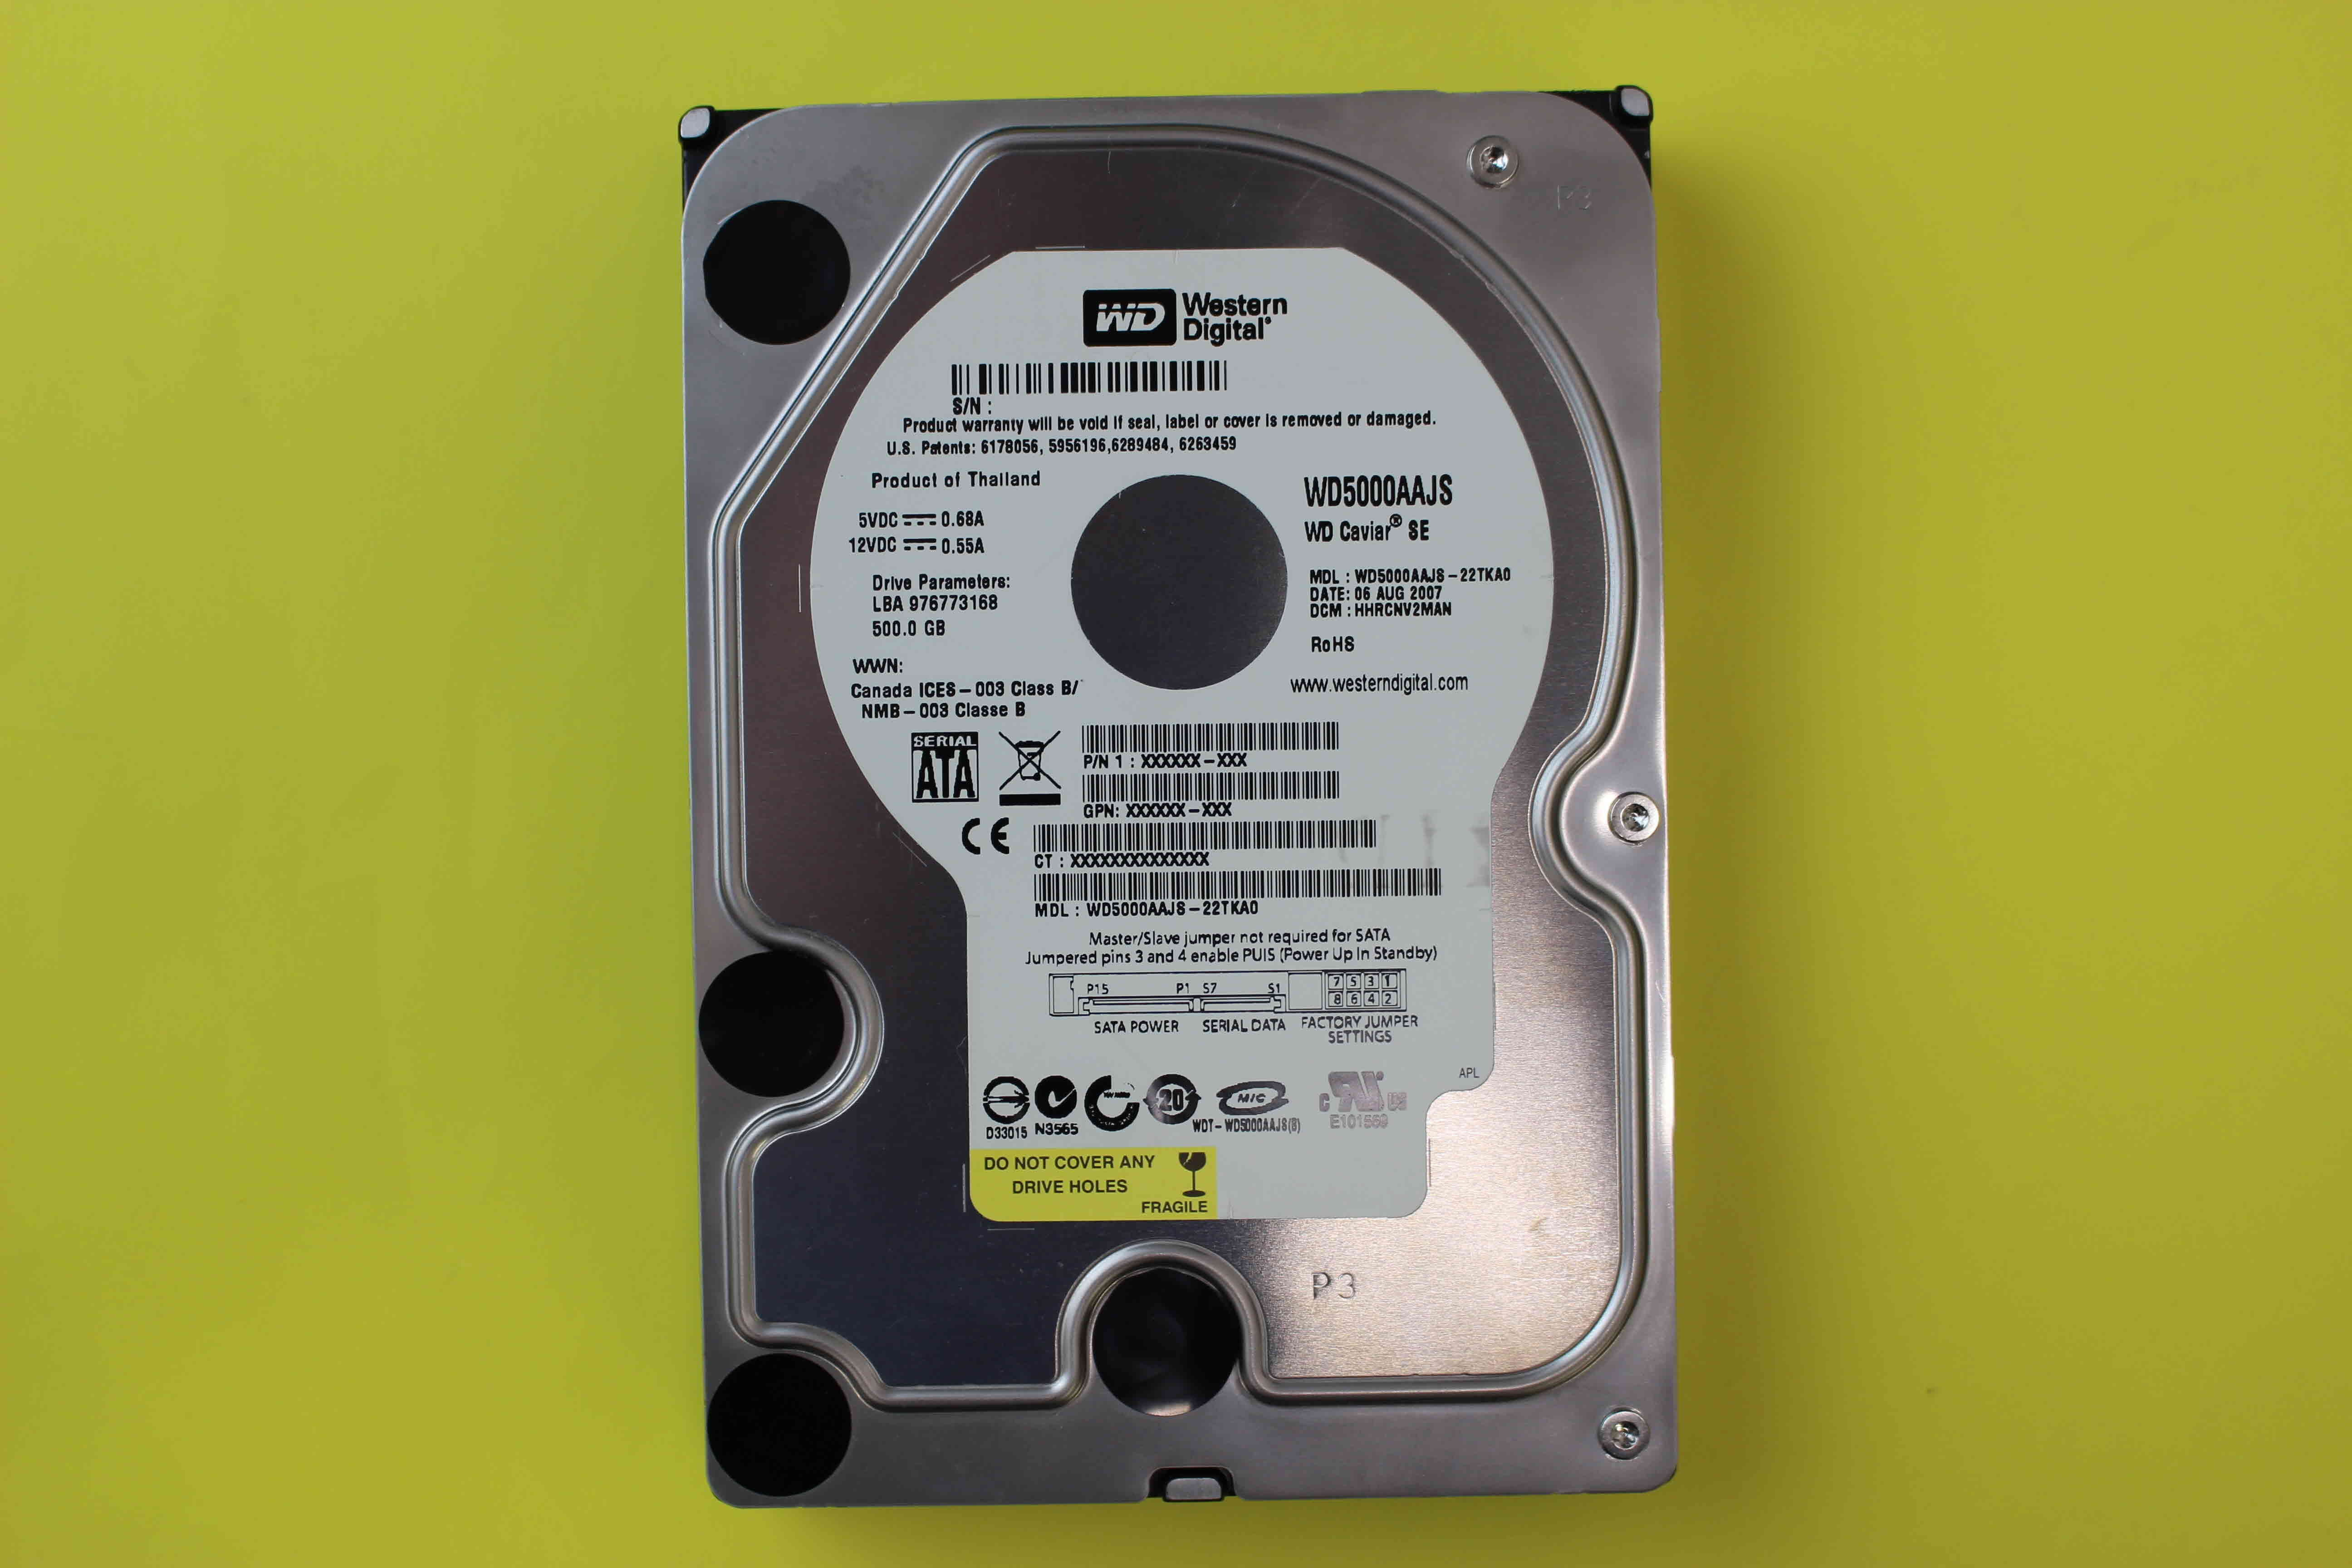 wd5000aajs-22tka0-recovery